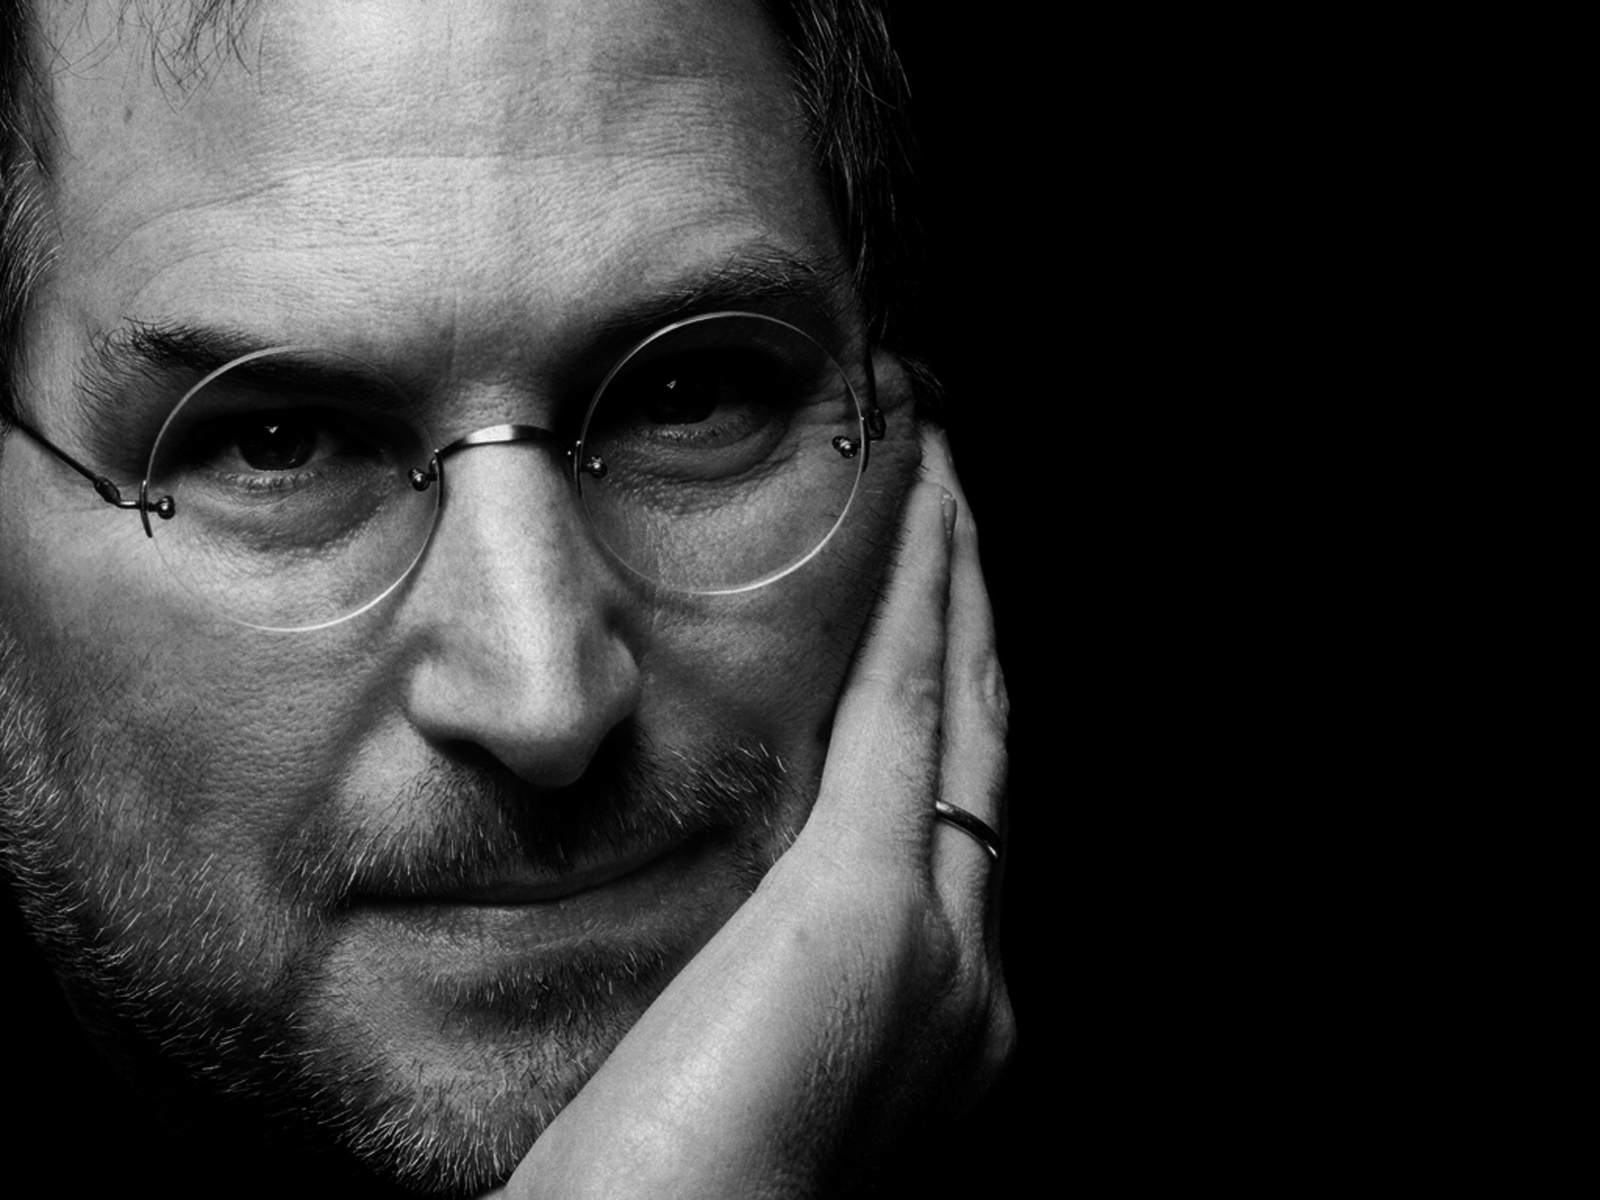 The Top 20 Most Inspiring Steve Jobs Quotes